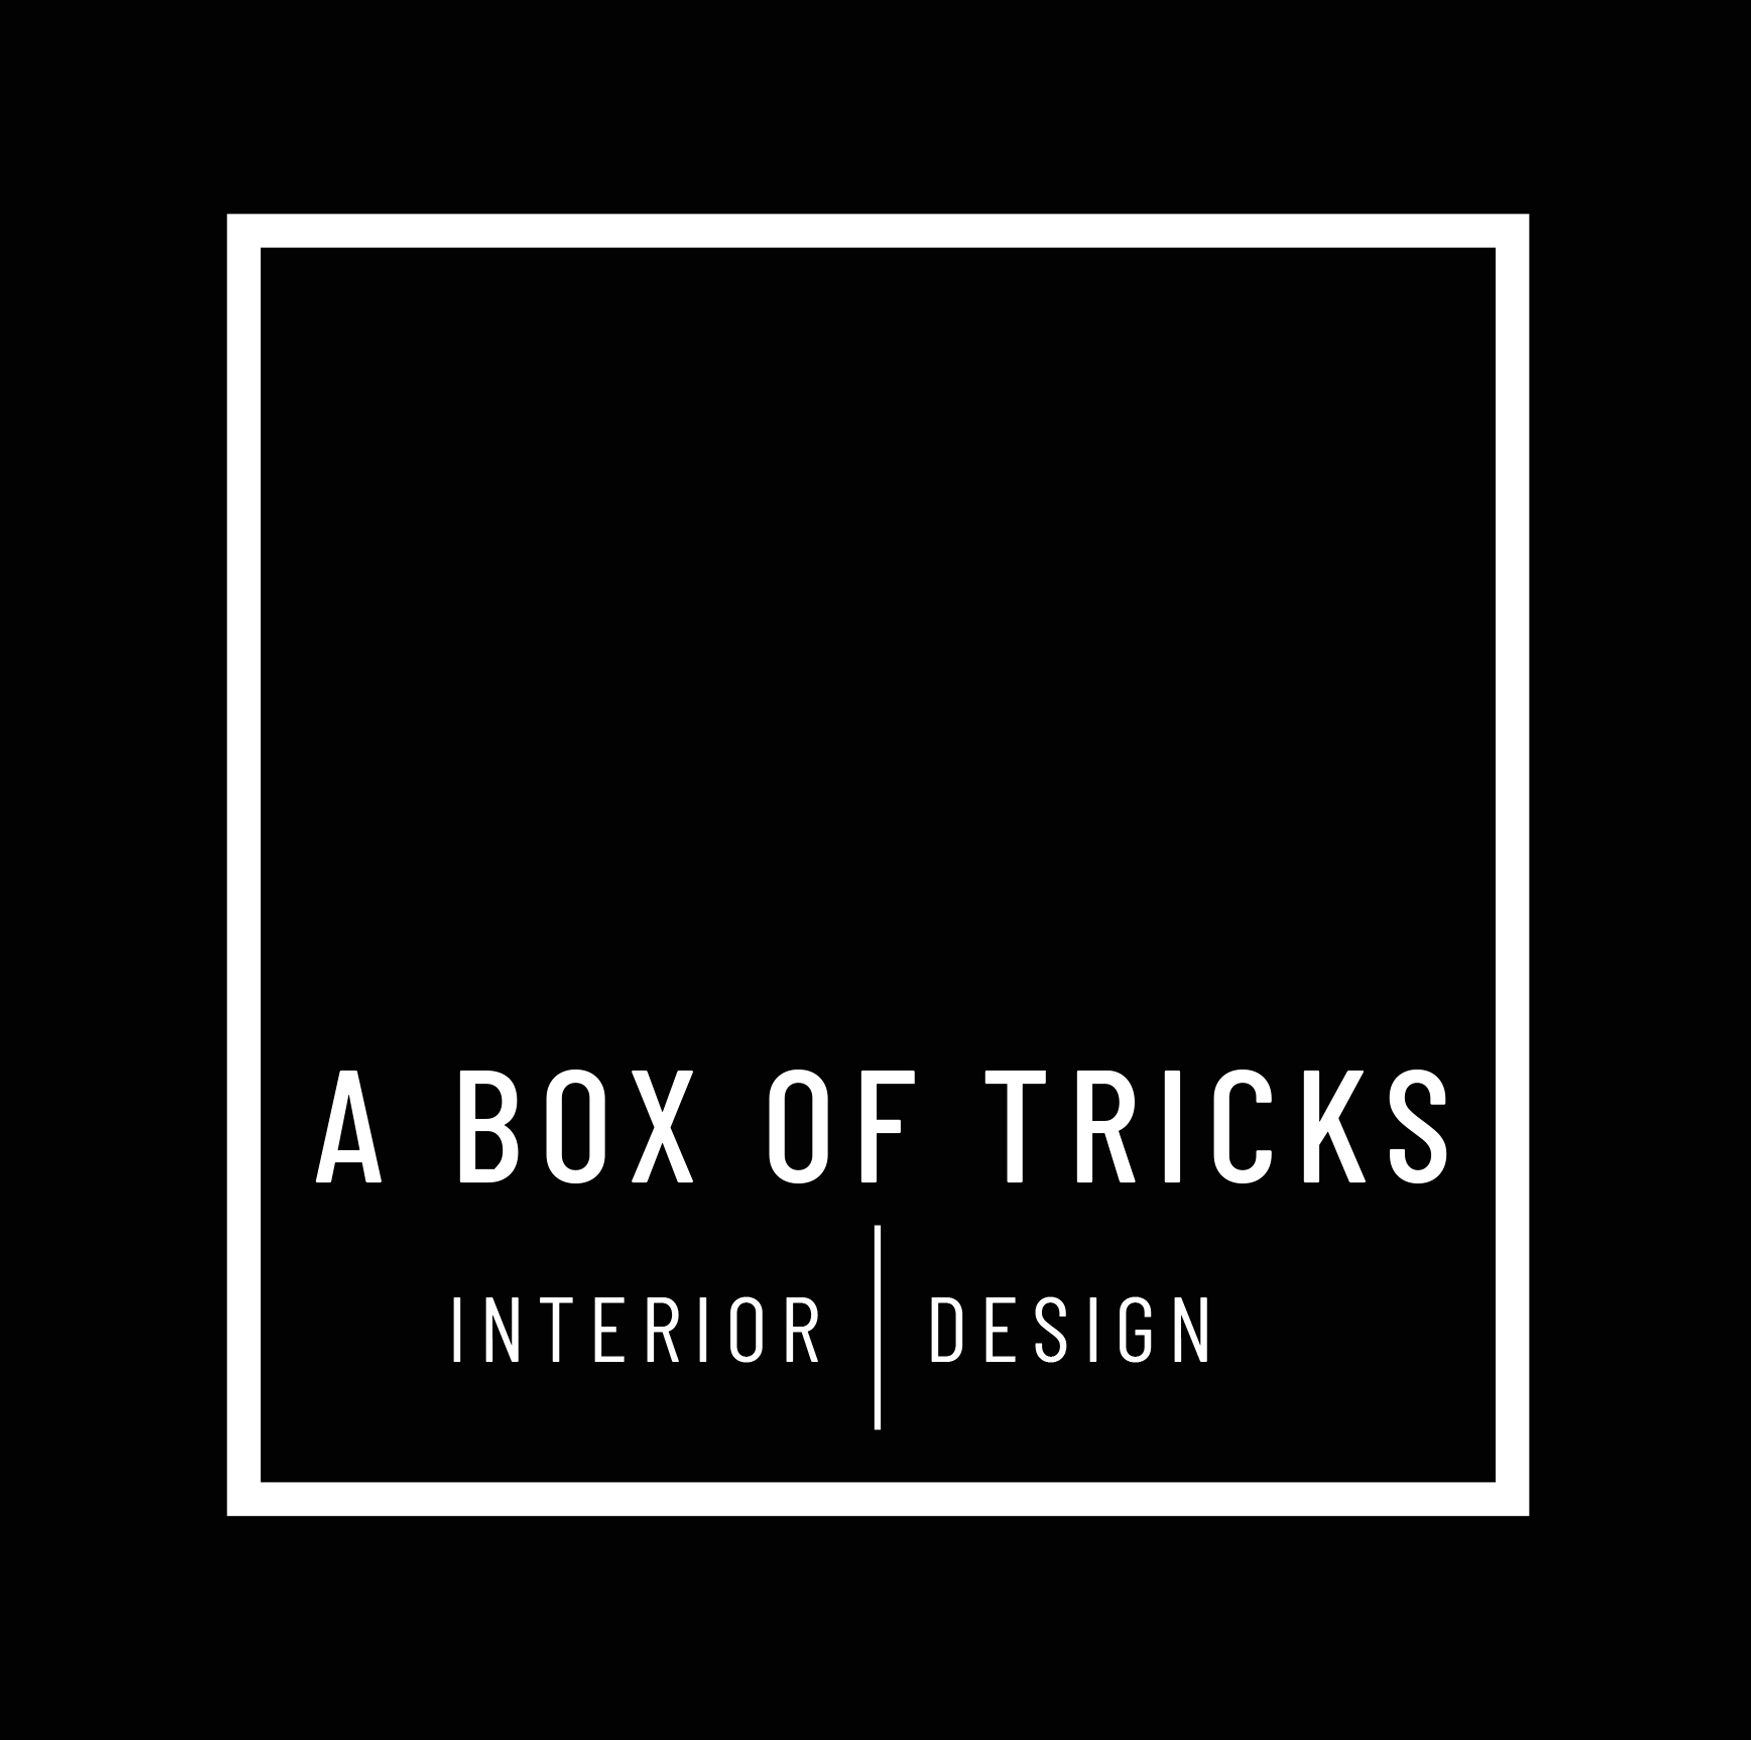 A Box of Tricks Interior Design Salisbury logo